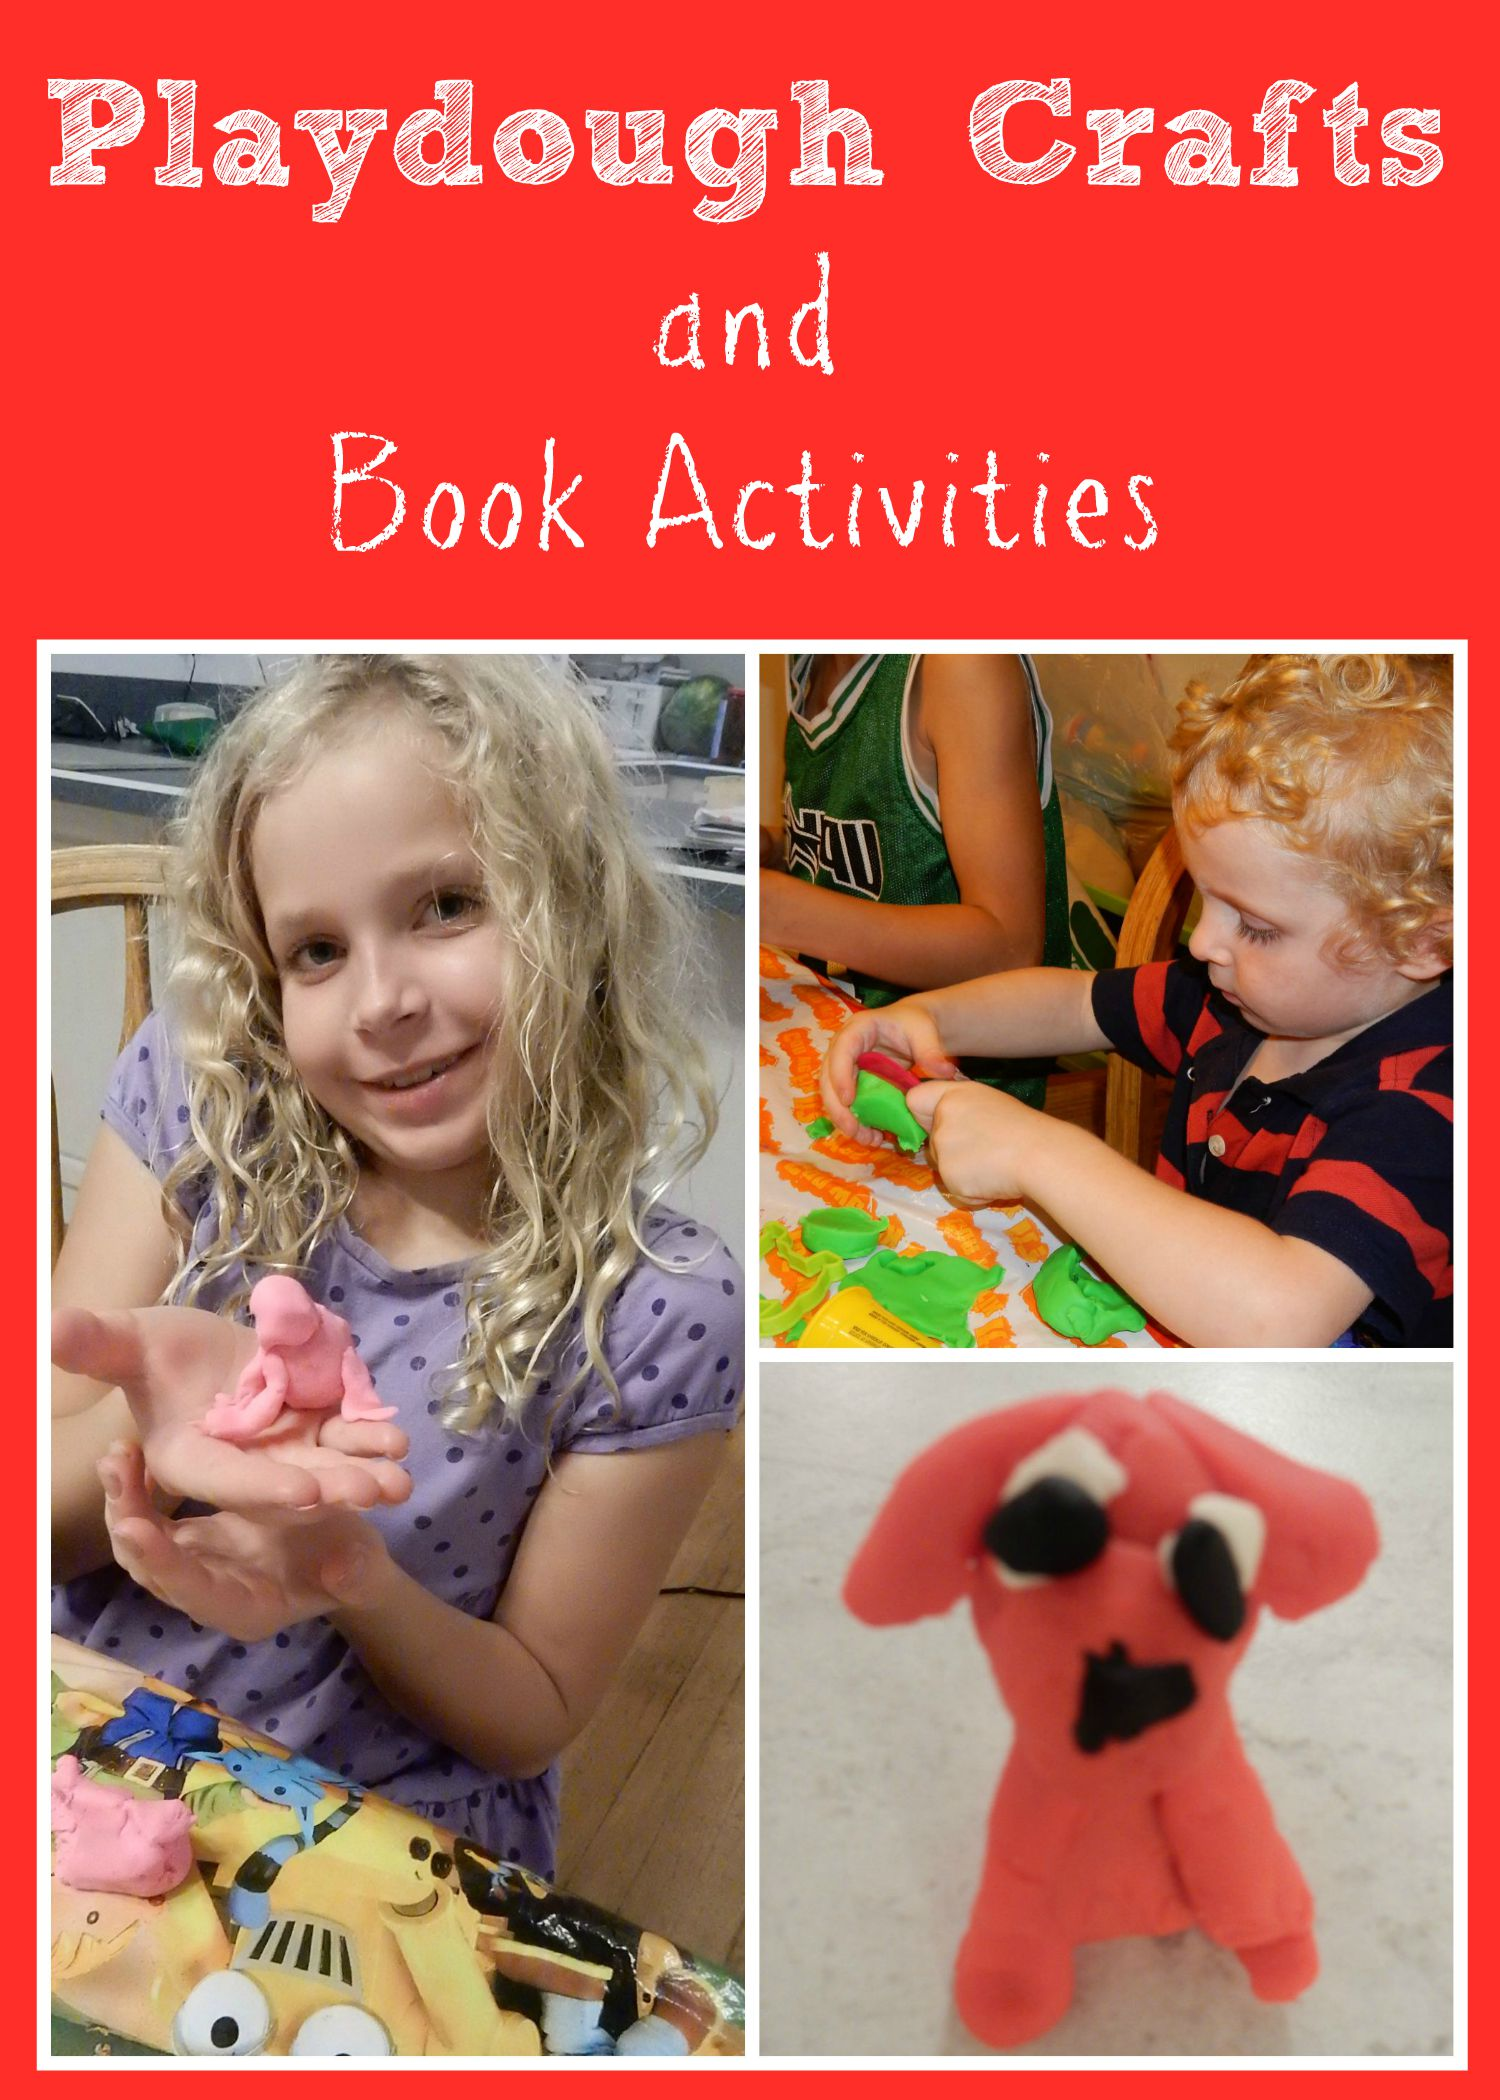 Playdough crafts and activities to go along with books.